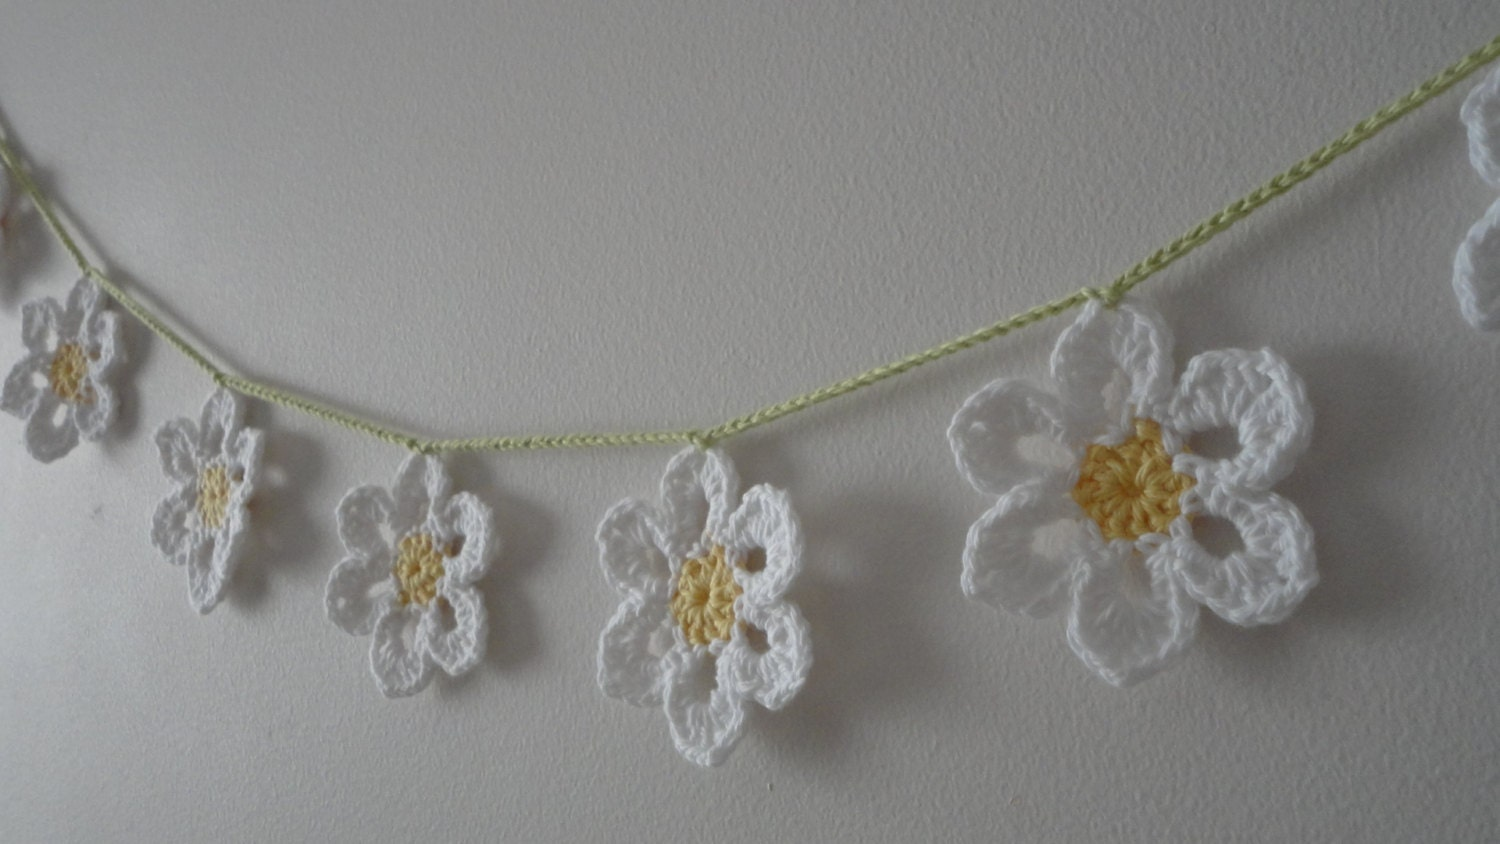 This 5' daisy chain garland measures about 60